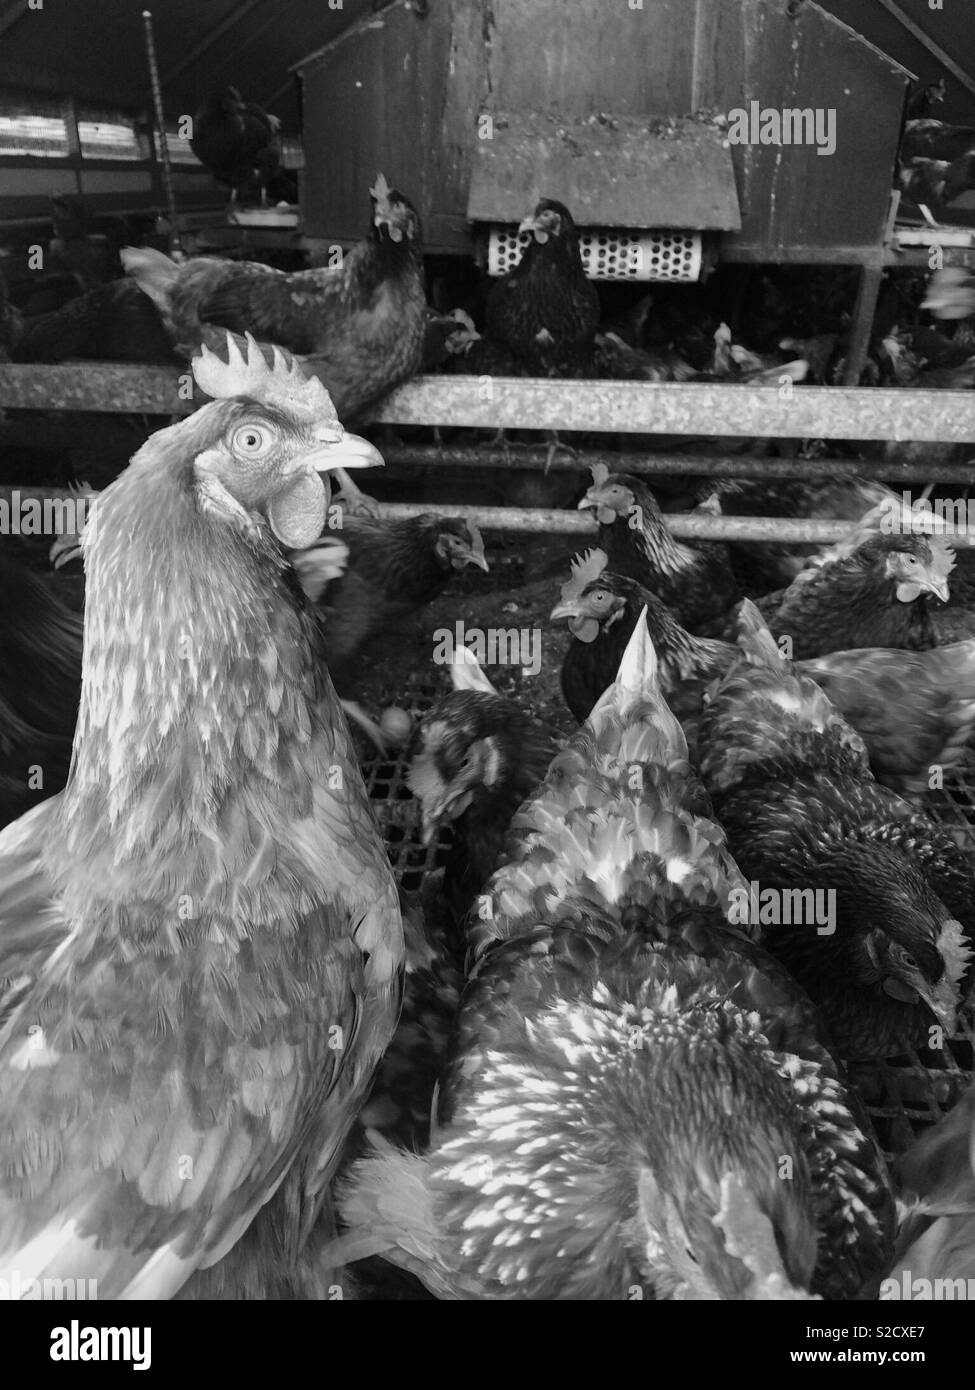 Hens in monochrome - Stock Image